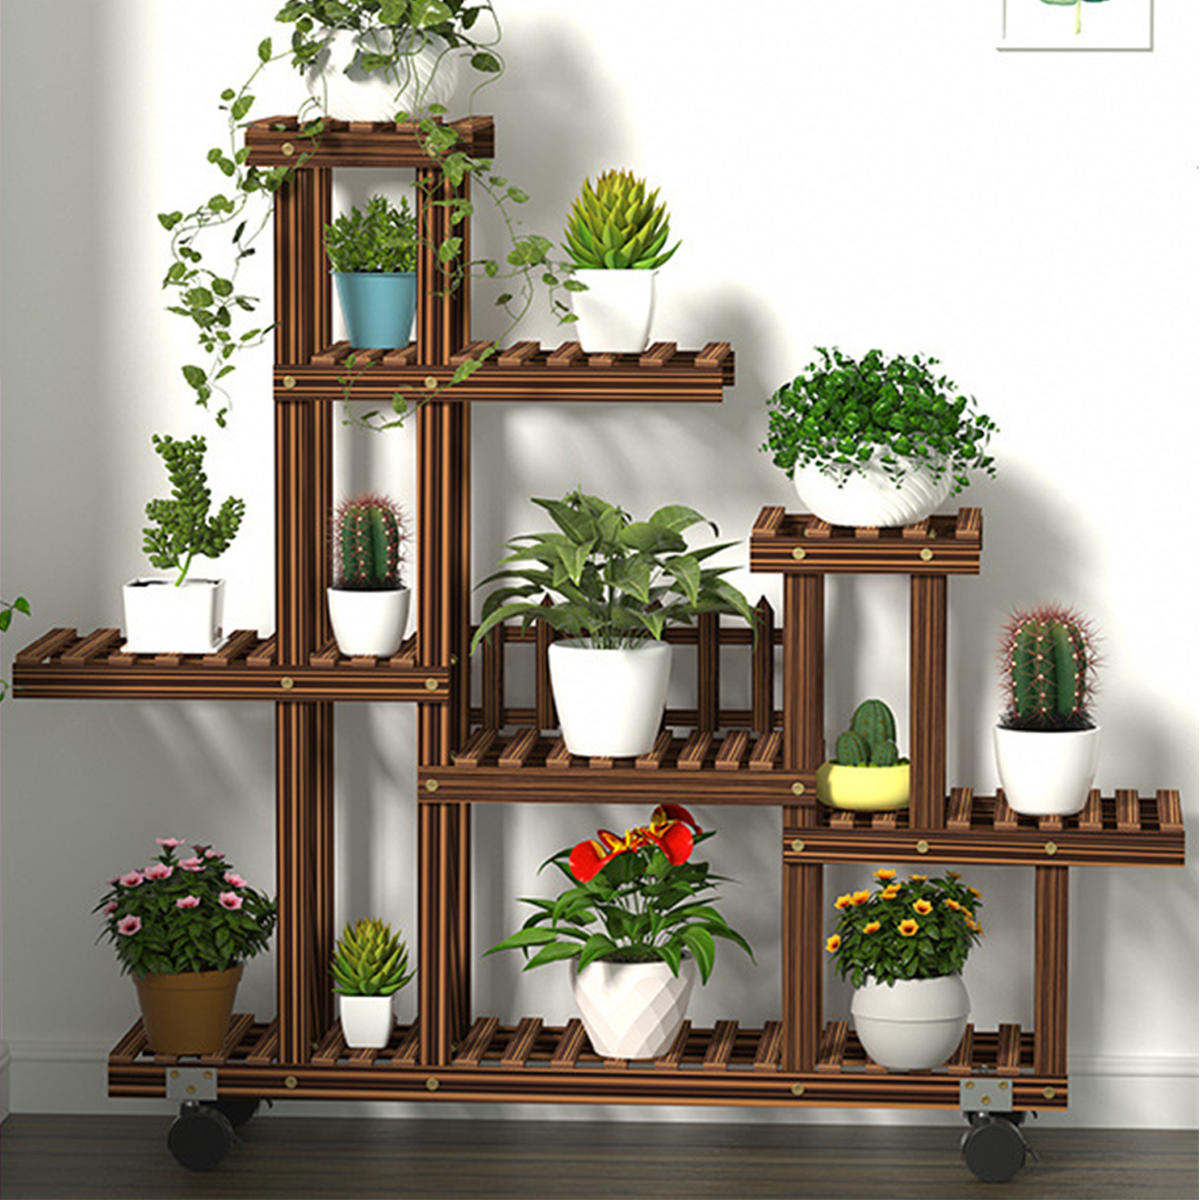 Multi-Tier Wooden Plant Flower Stand Plants Shelf Bookshelf Standing Flower Potted Windmill Plant Holder Display Outdoor